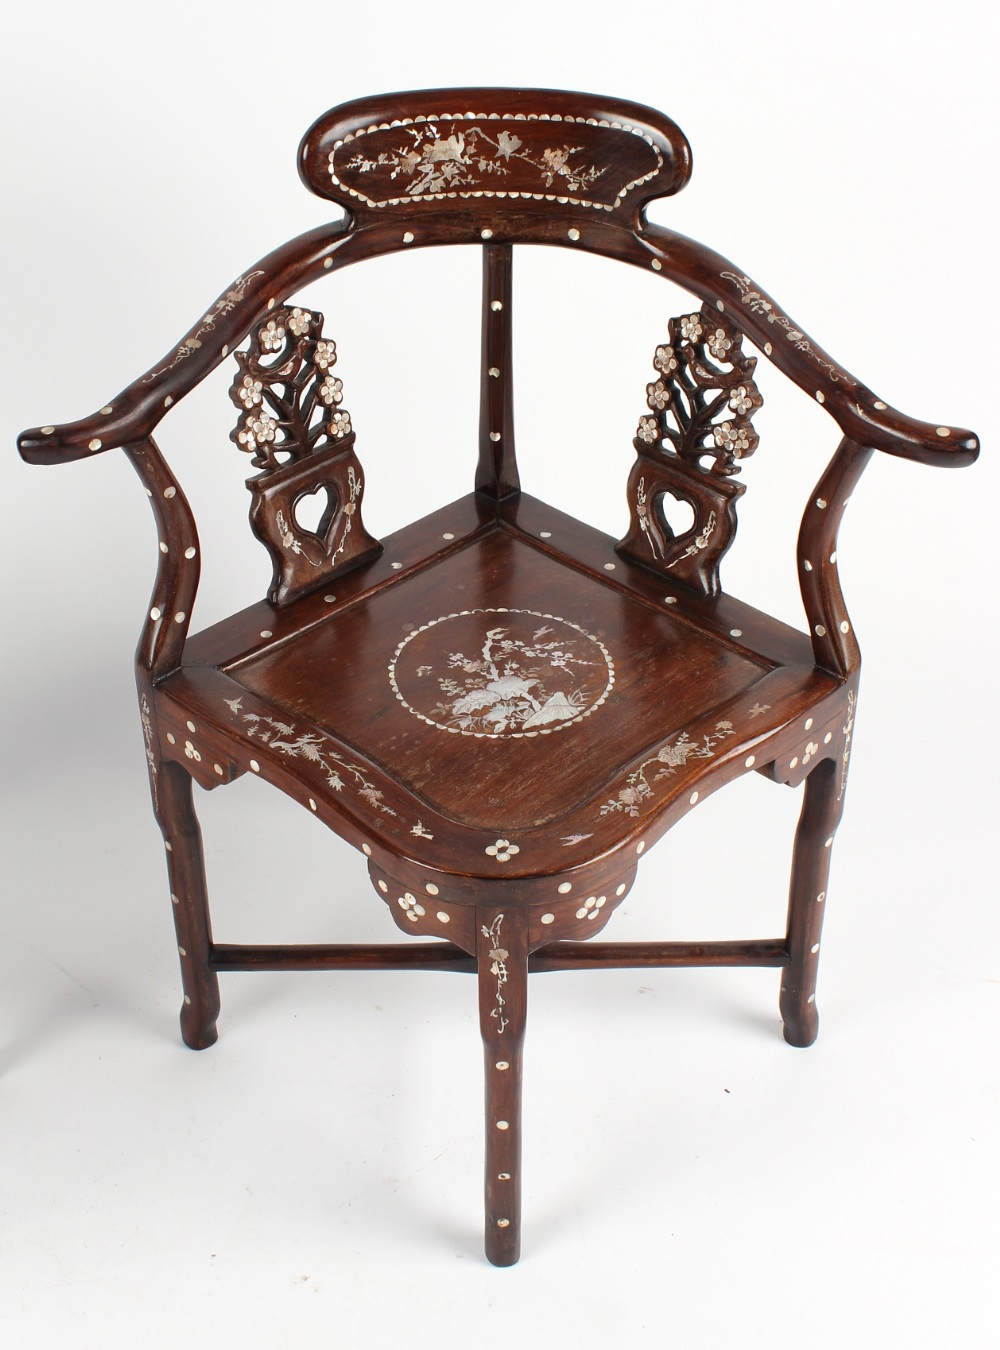 A pair of Chinese mother-of-pearl inlaid corner chairs (2). - Image 2 of 3